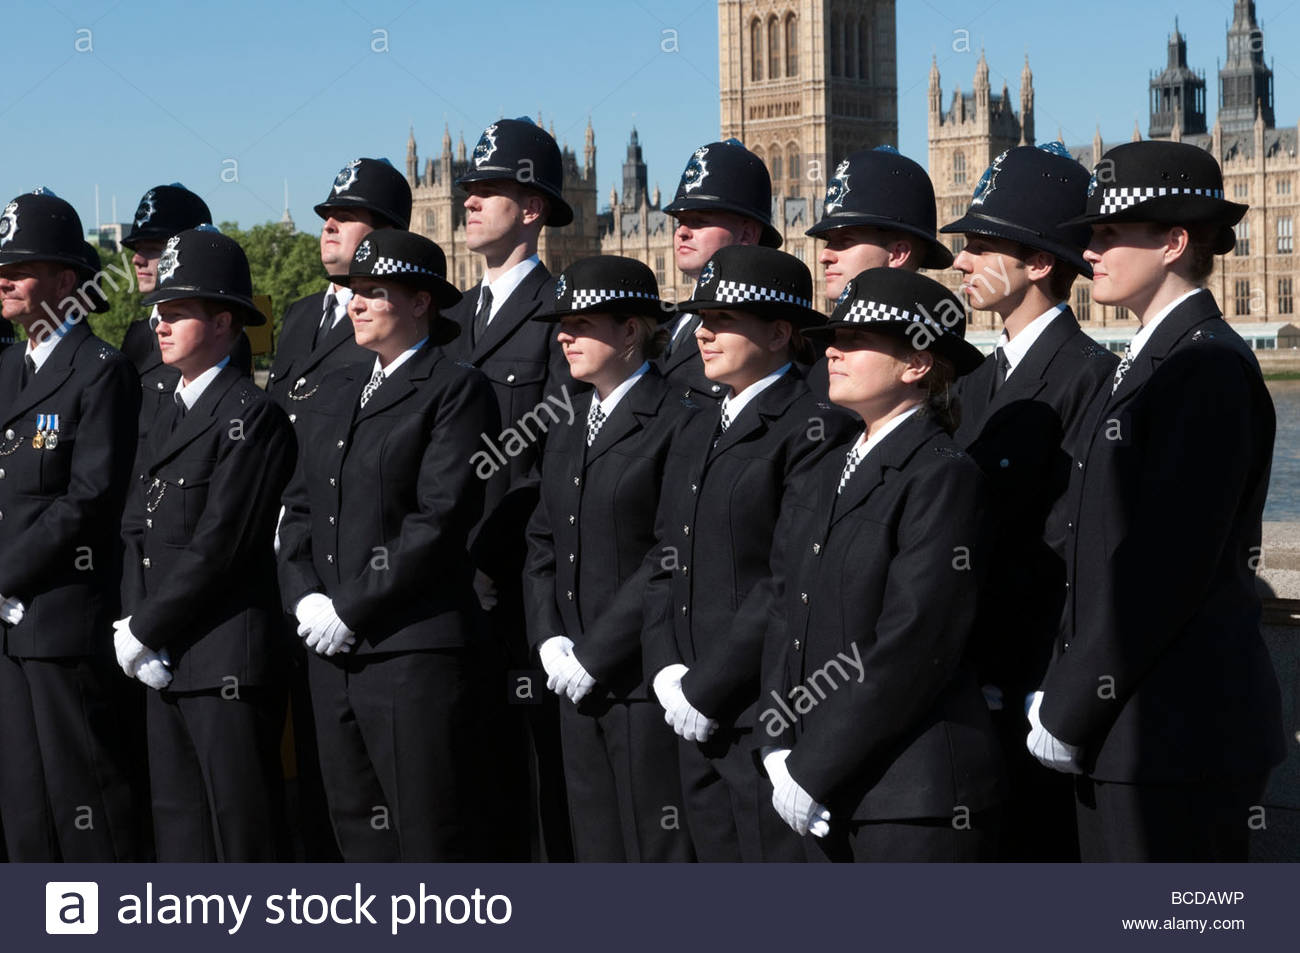 London Police posing for an official group photo, England UK - Stock Image